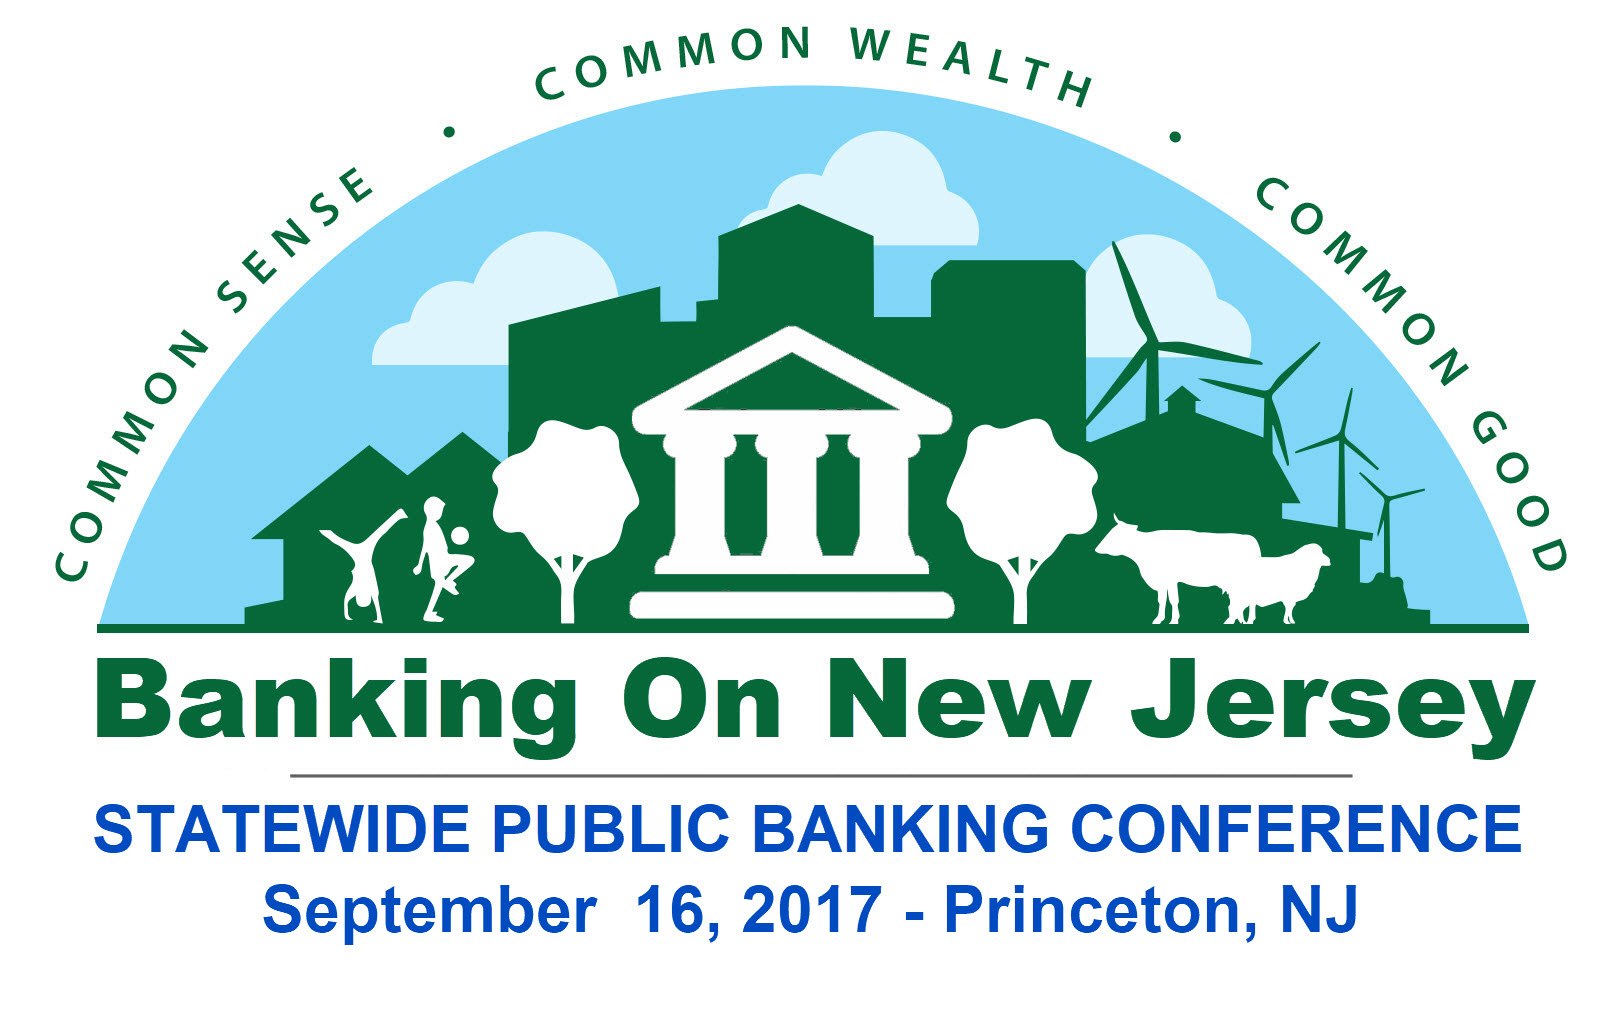 Banking on New Jersey Statewide Public Banking Conference